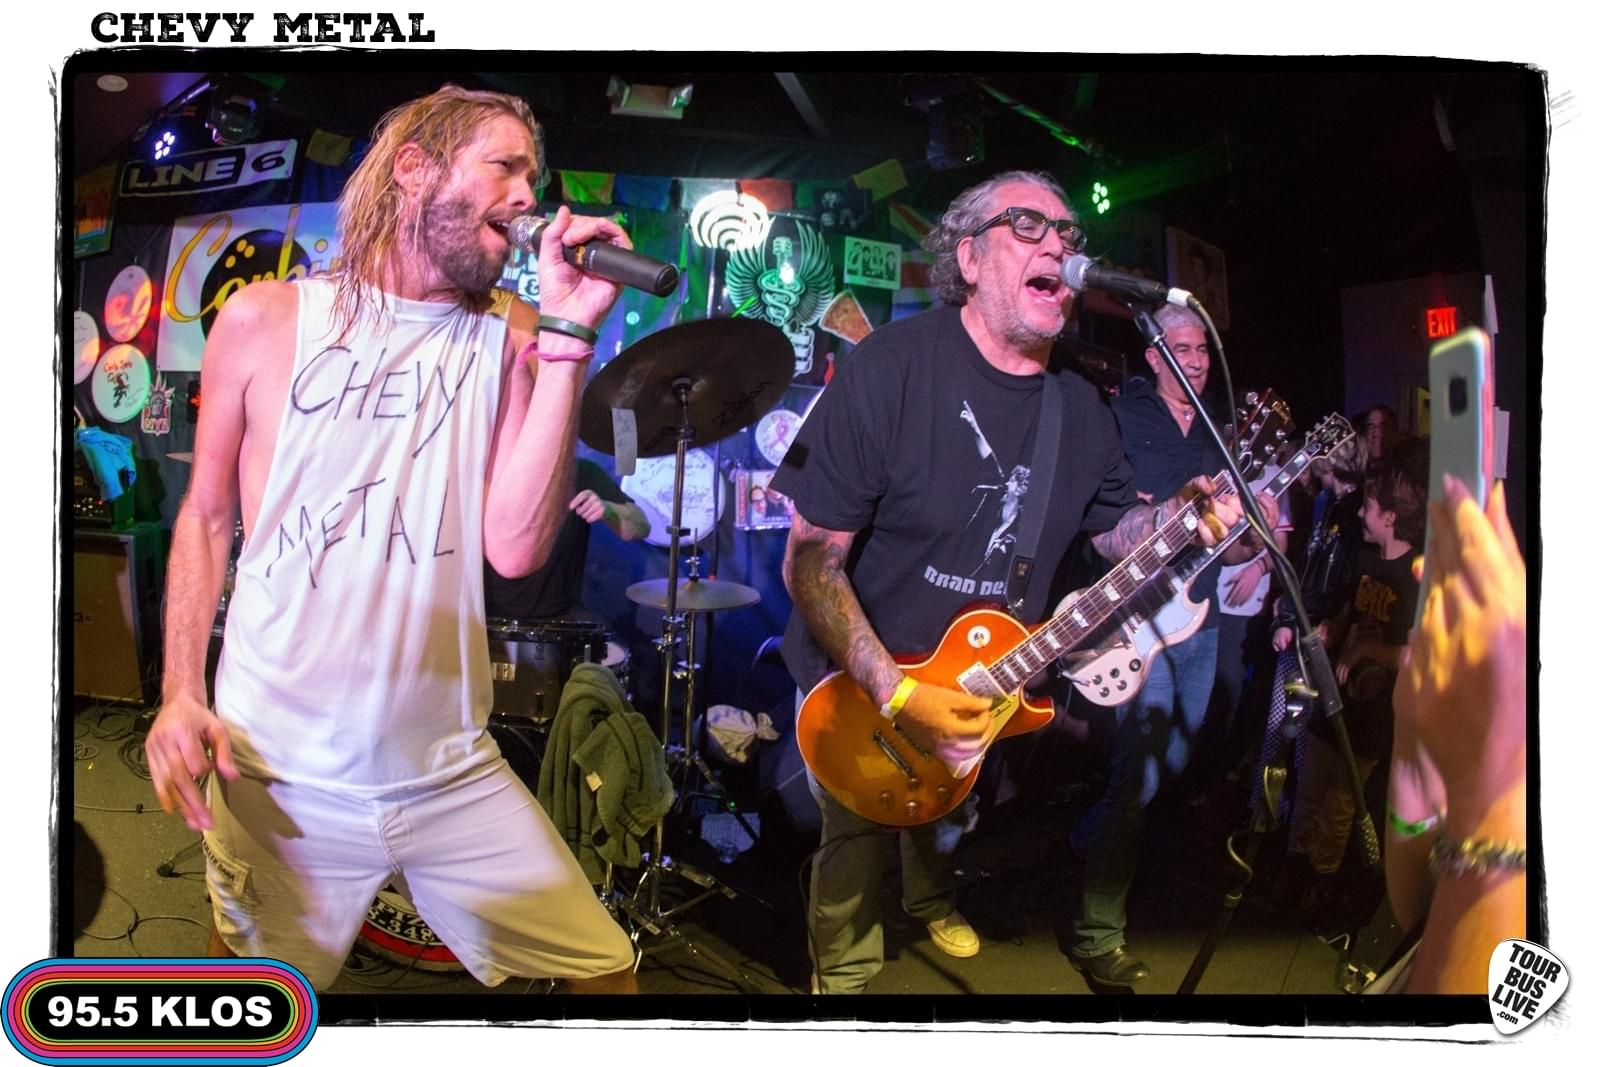 JAN. 12: Chevy Metal and Jonesy rock the lanes in Tarzana